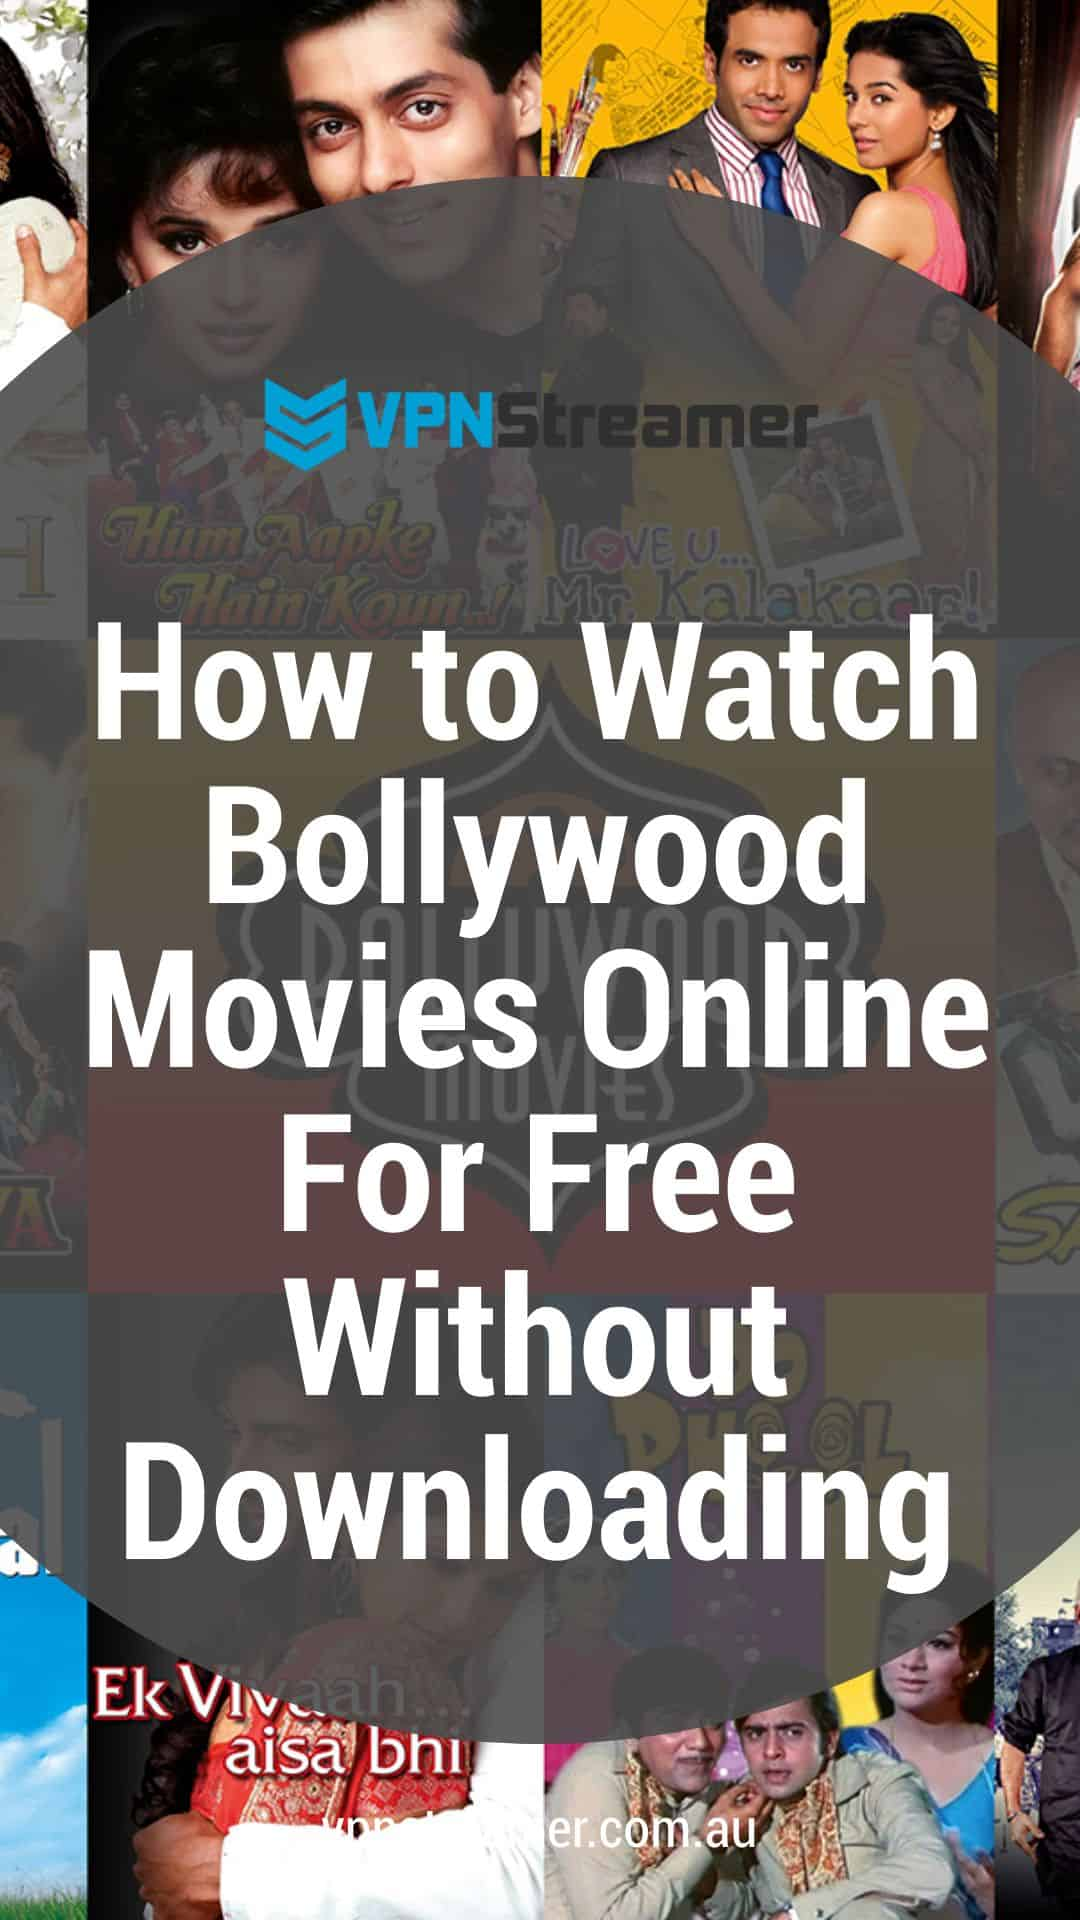 How to Watch Bollywood Movies Online For Free Without Downloading